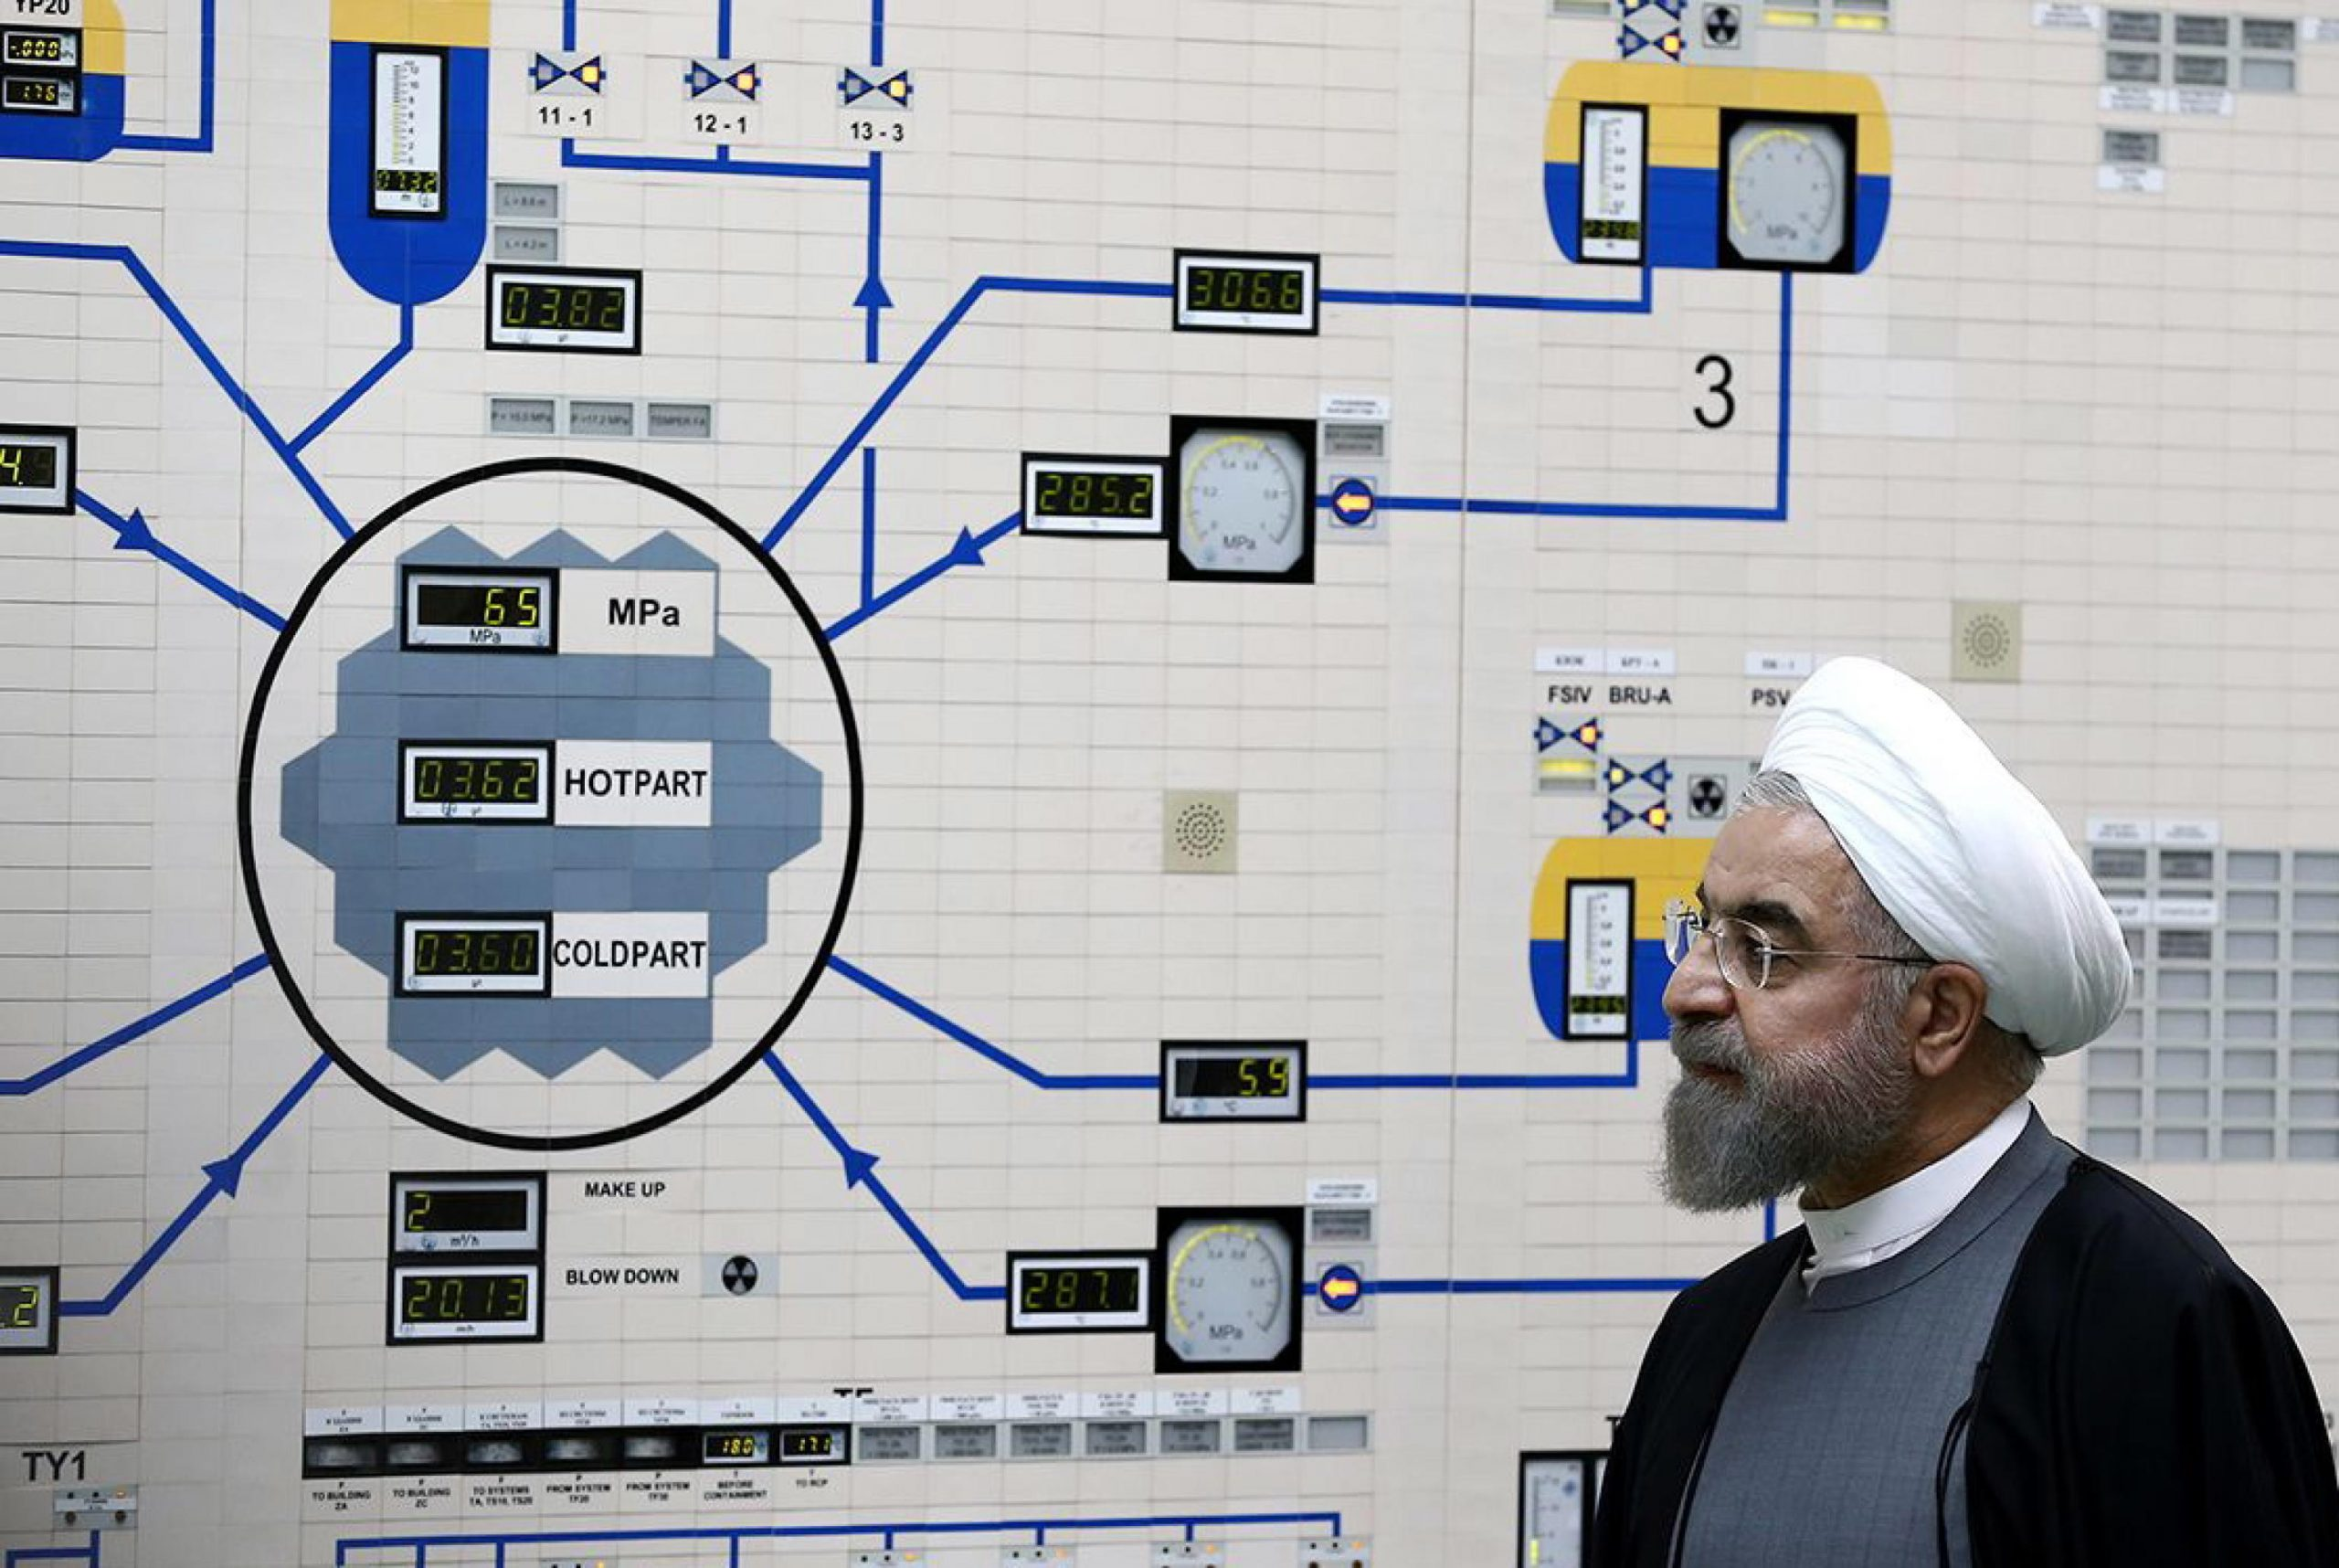 Iran and the United States, who will take the first step on nuclear energy?